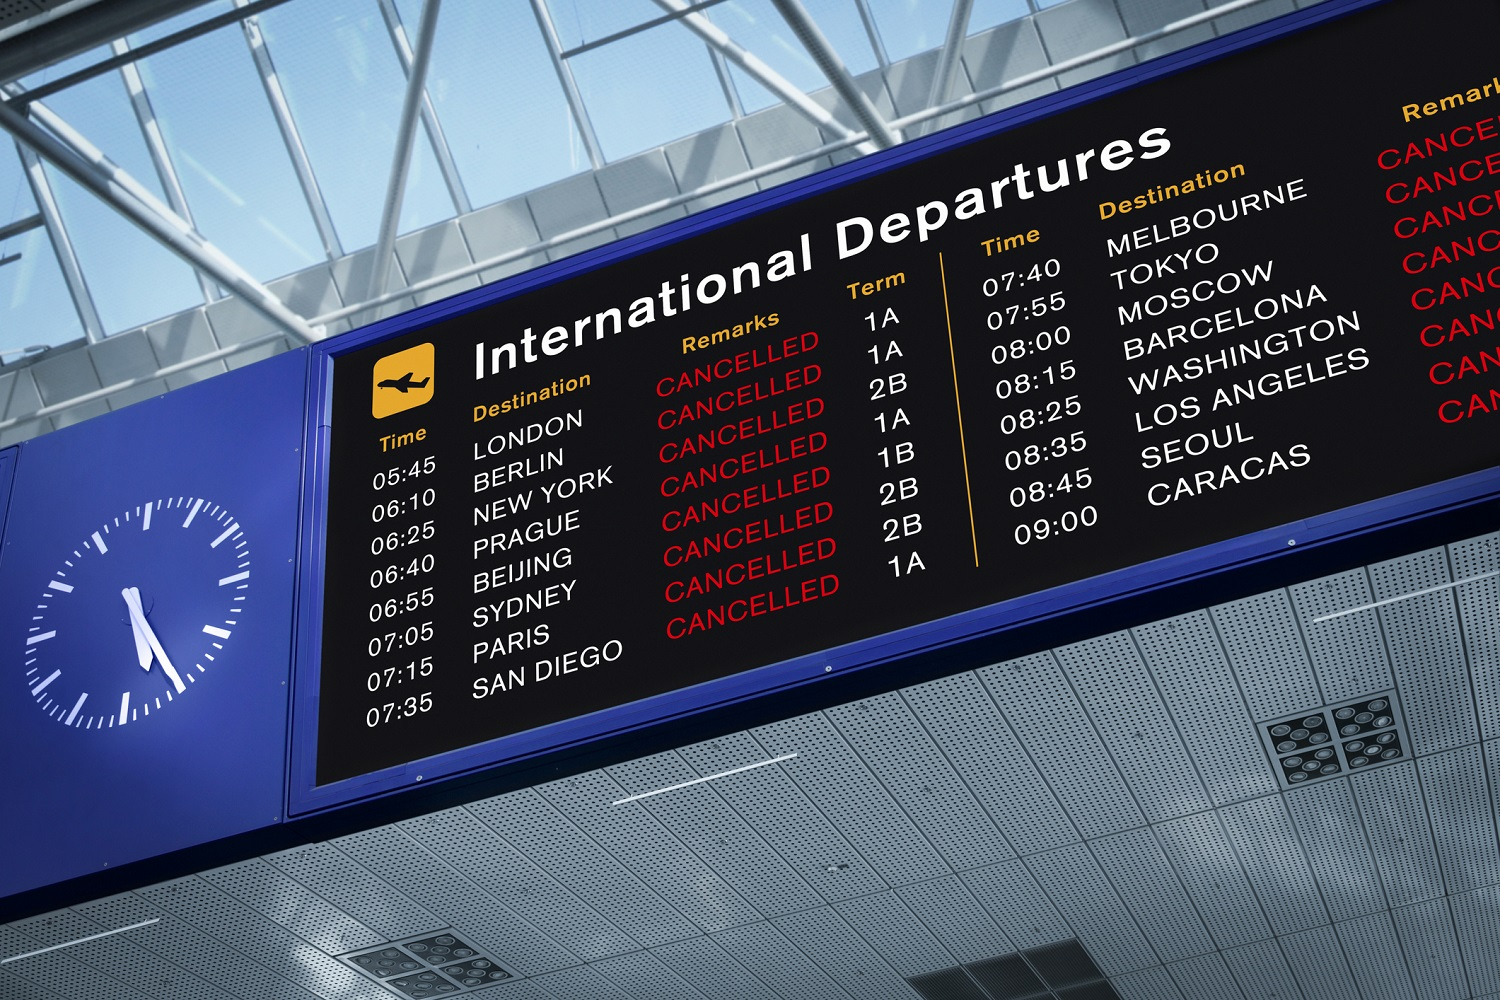 Board-with-cancelled-flights